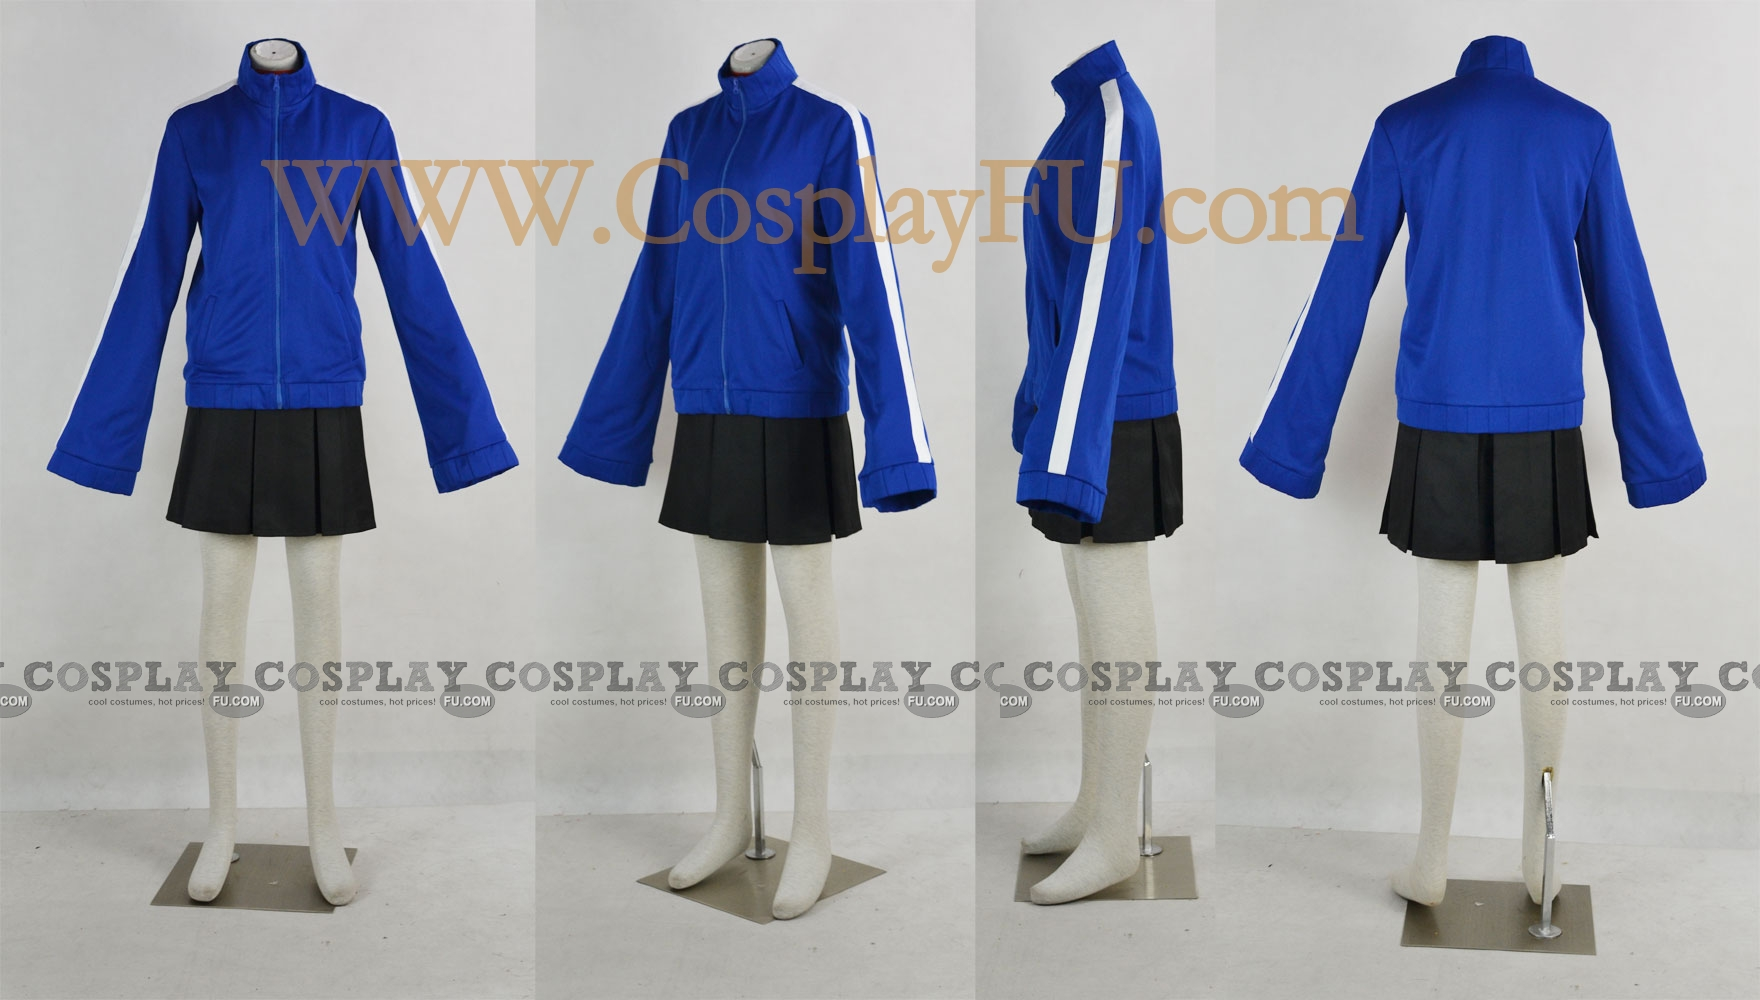 Ene Cosplay Costume from Kagerou Project